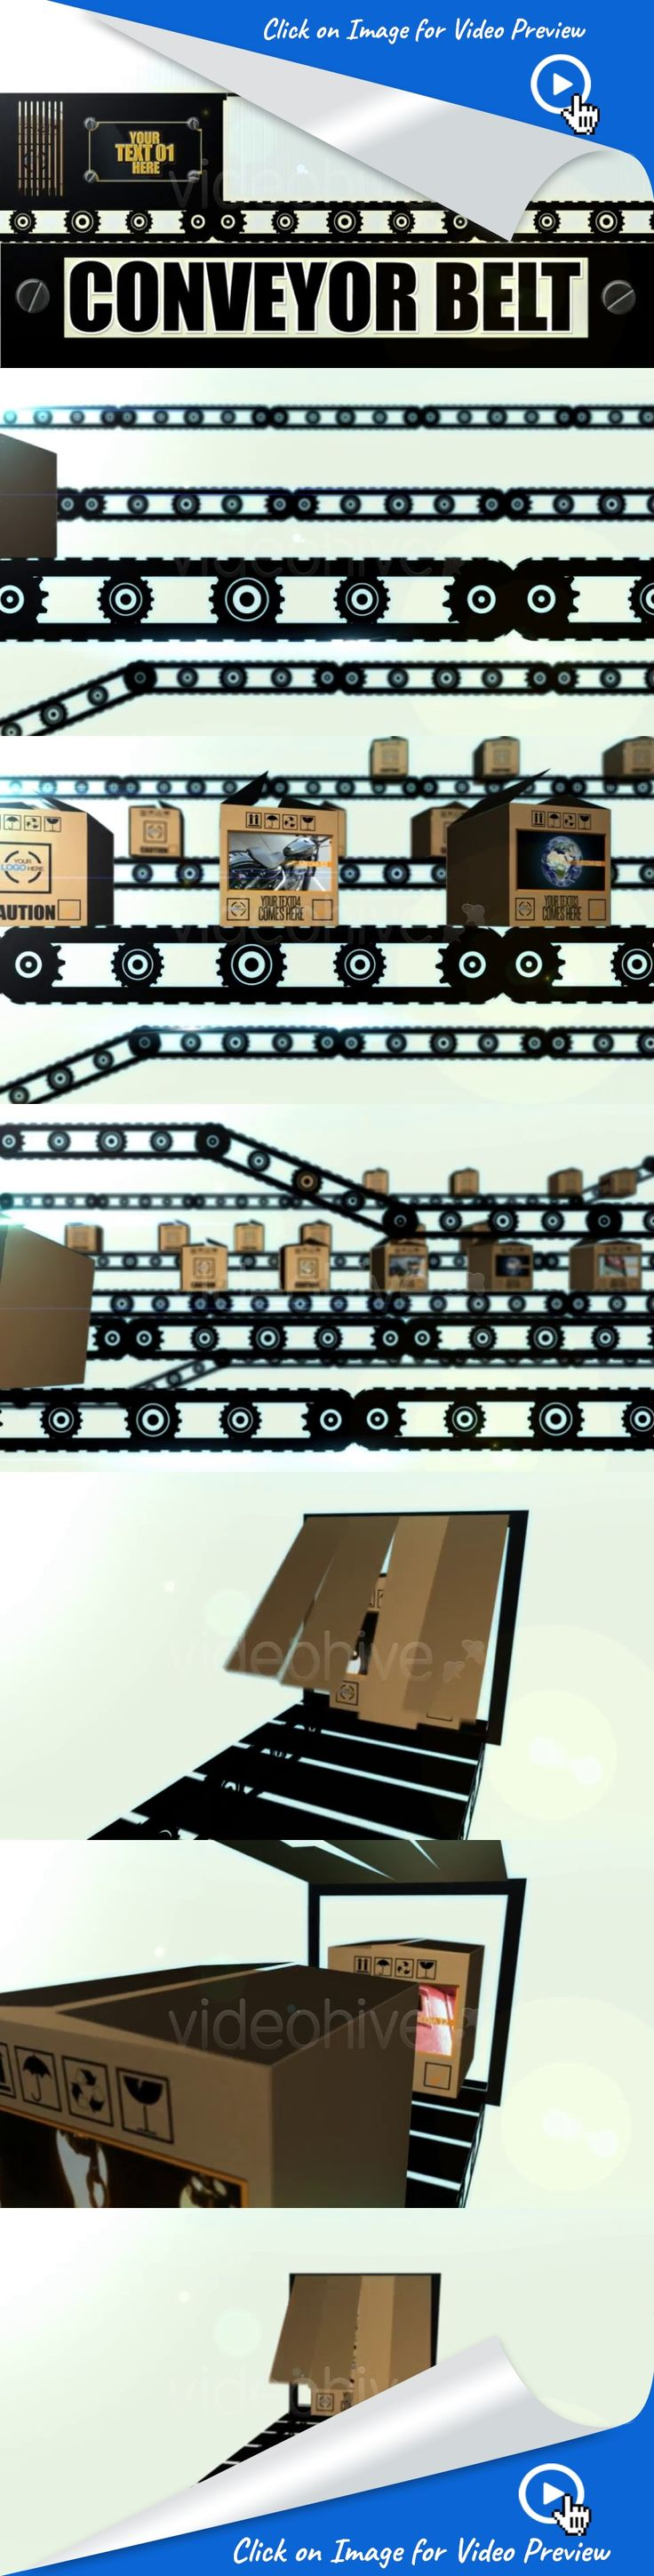 airport, boxes, cardboard, conveyor belt, factory, hotel, industrial, ramp, shopping, title, transport, transporter, travel, after effects templates, after effects ideas, after effects motion graphics, after effects projects, videohive projects 100% After Effects project with lots of potential. Instead of cardboard boxes you can also use live images of people or products shot on green screen etc.  Font used Steelfish. Download  http://www.dafont.com/steelfish.font    Video Tutorial…